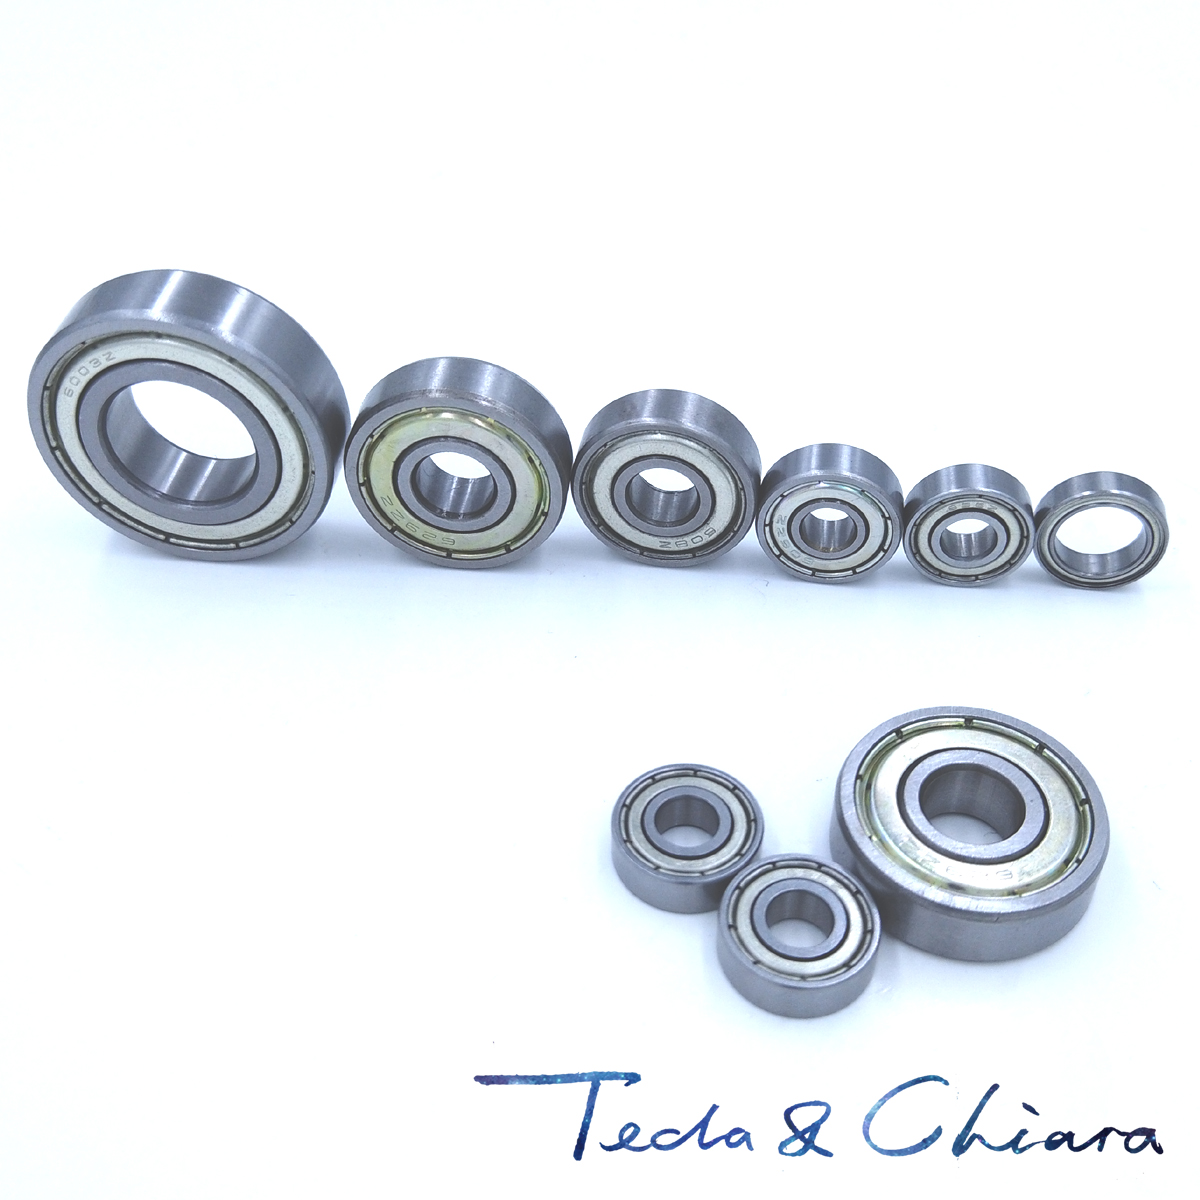 2Pcs 6204-2Z <font><b>6204ZZ</b></font> <font><b>6204zz</b></font> 6204 zz Deep Groove Ball Bearings 20 x 47 x 14mm Free shipping High Quality image